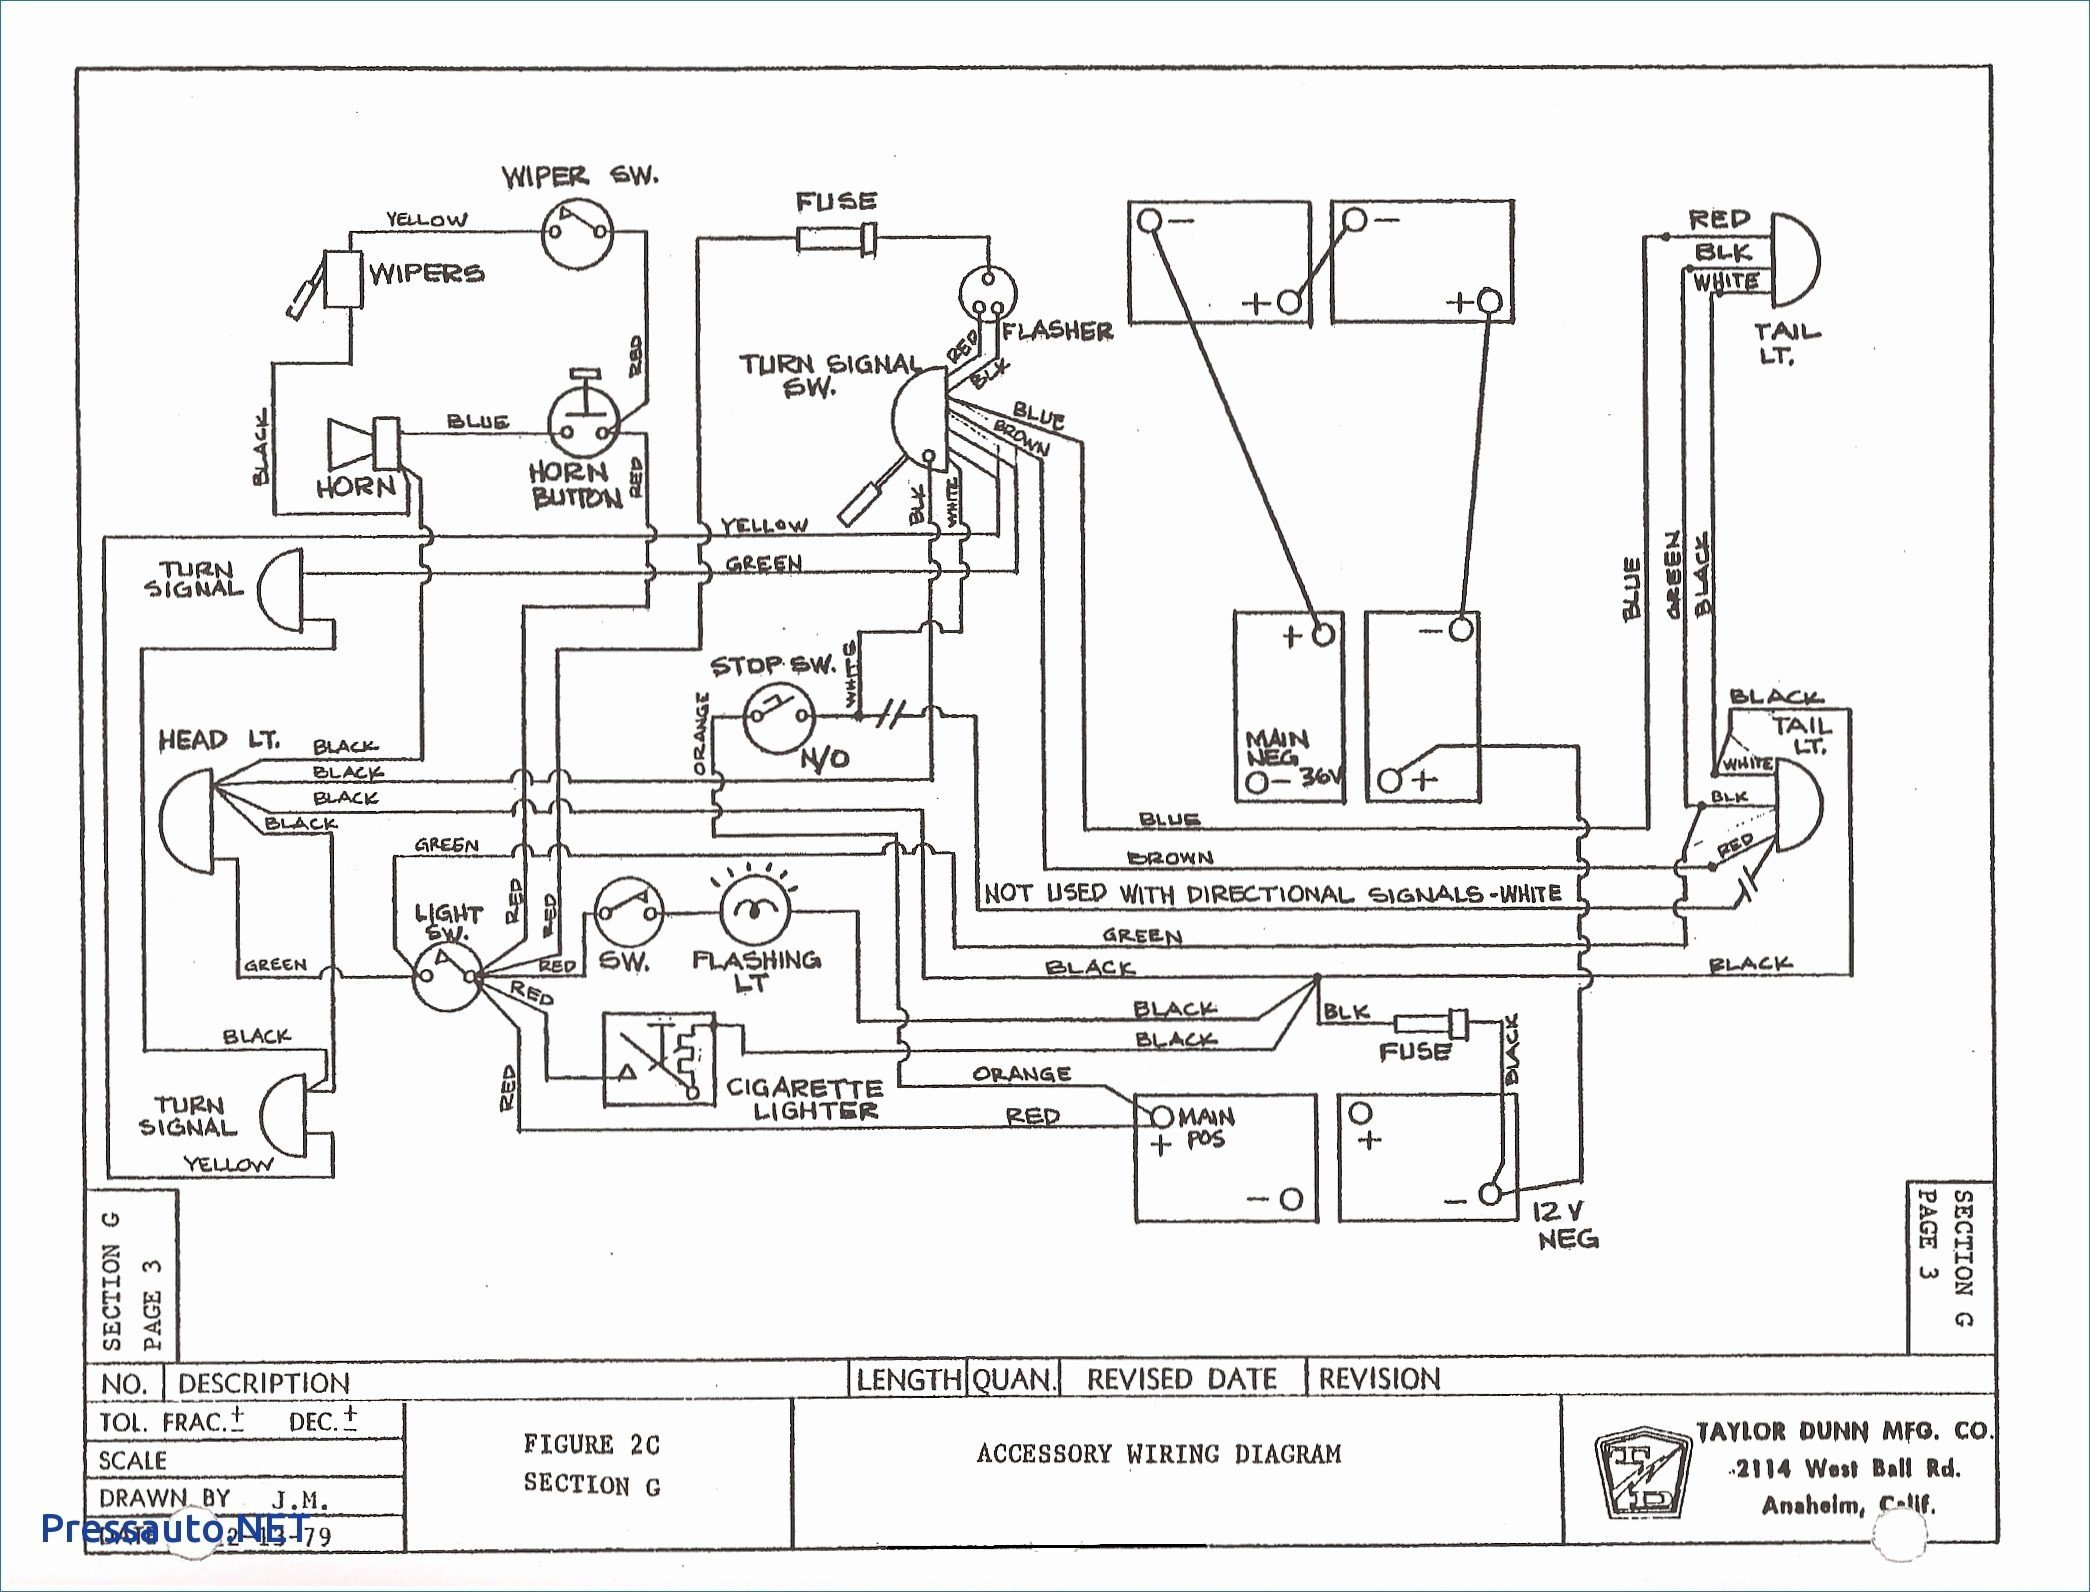 Wiring Diagram For Club Car Lights | Wiring Library - 48 Volt Golf Cart Battery Wiring Diagram